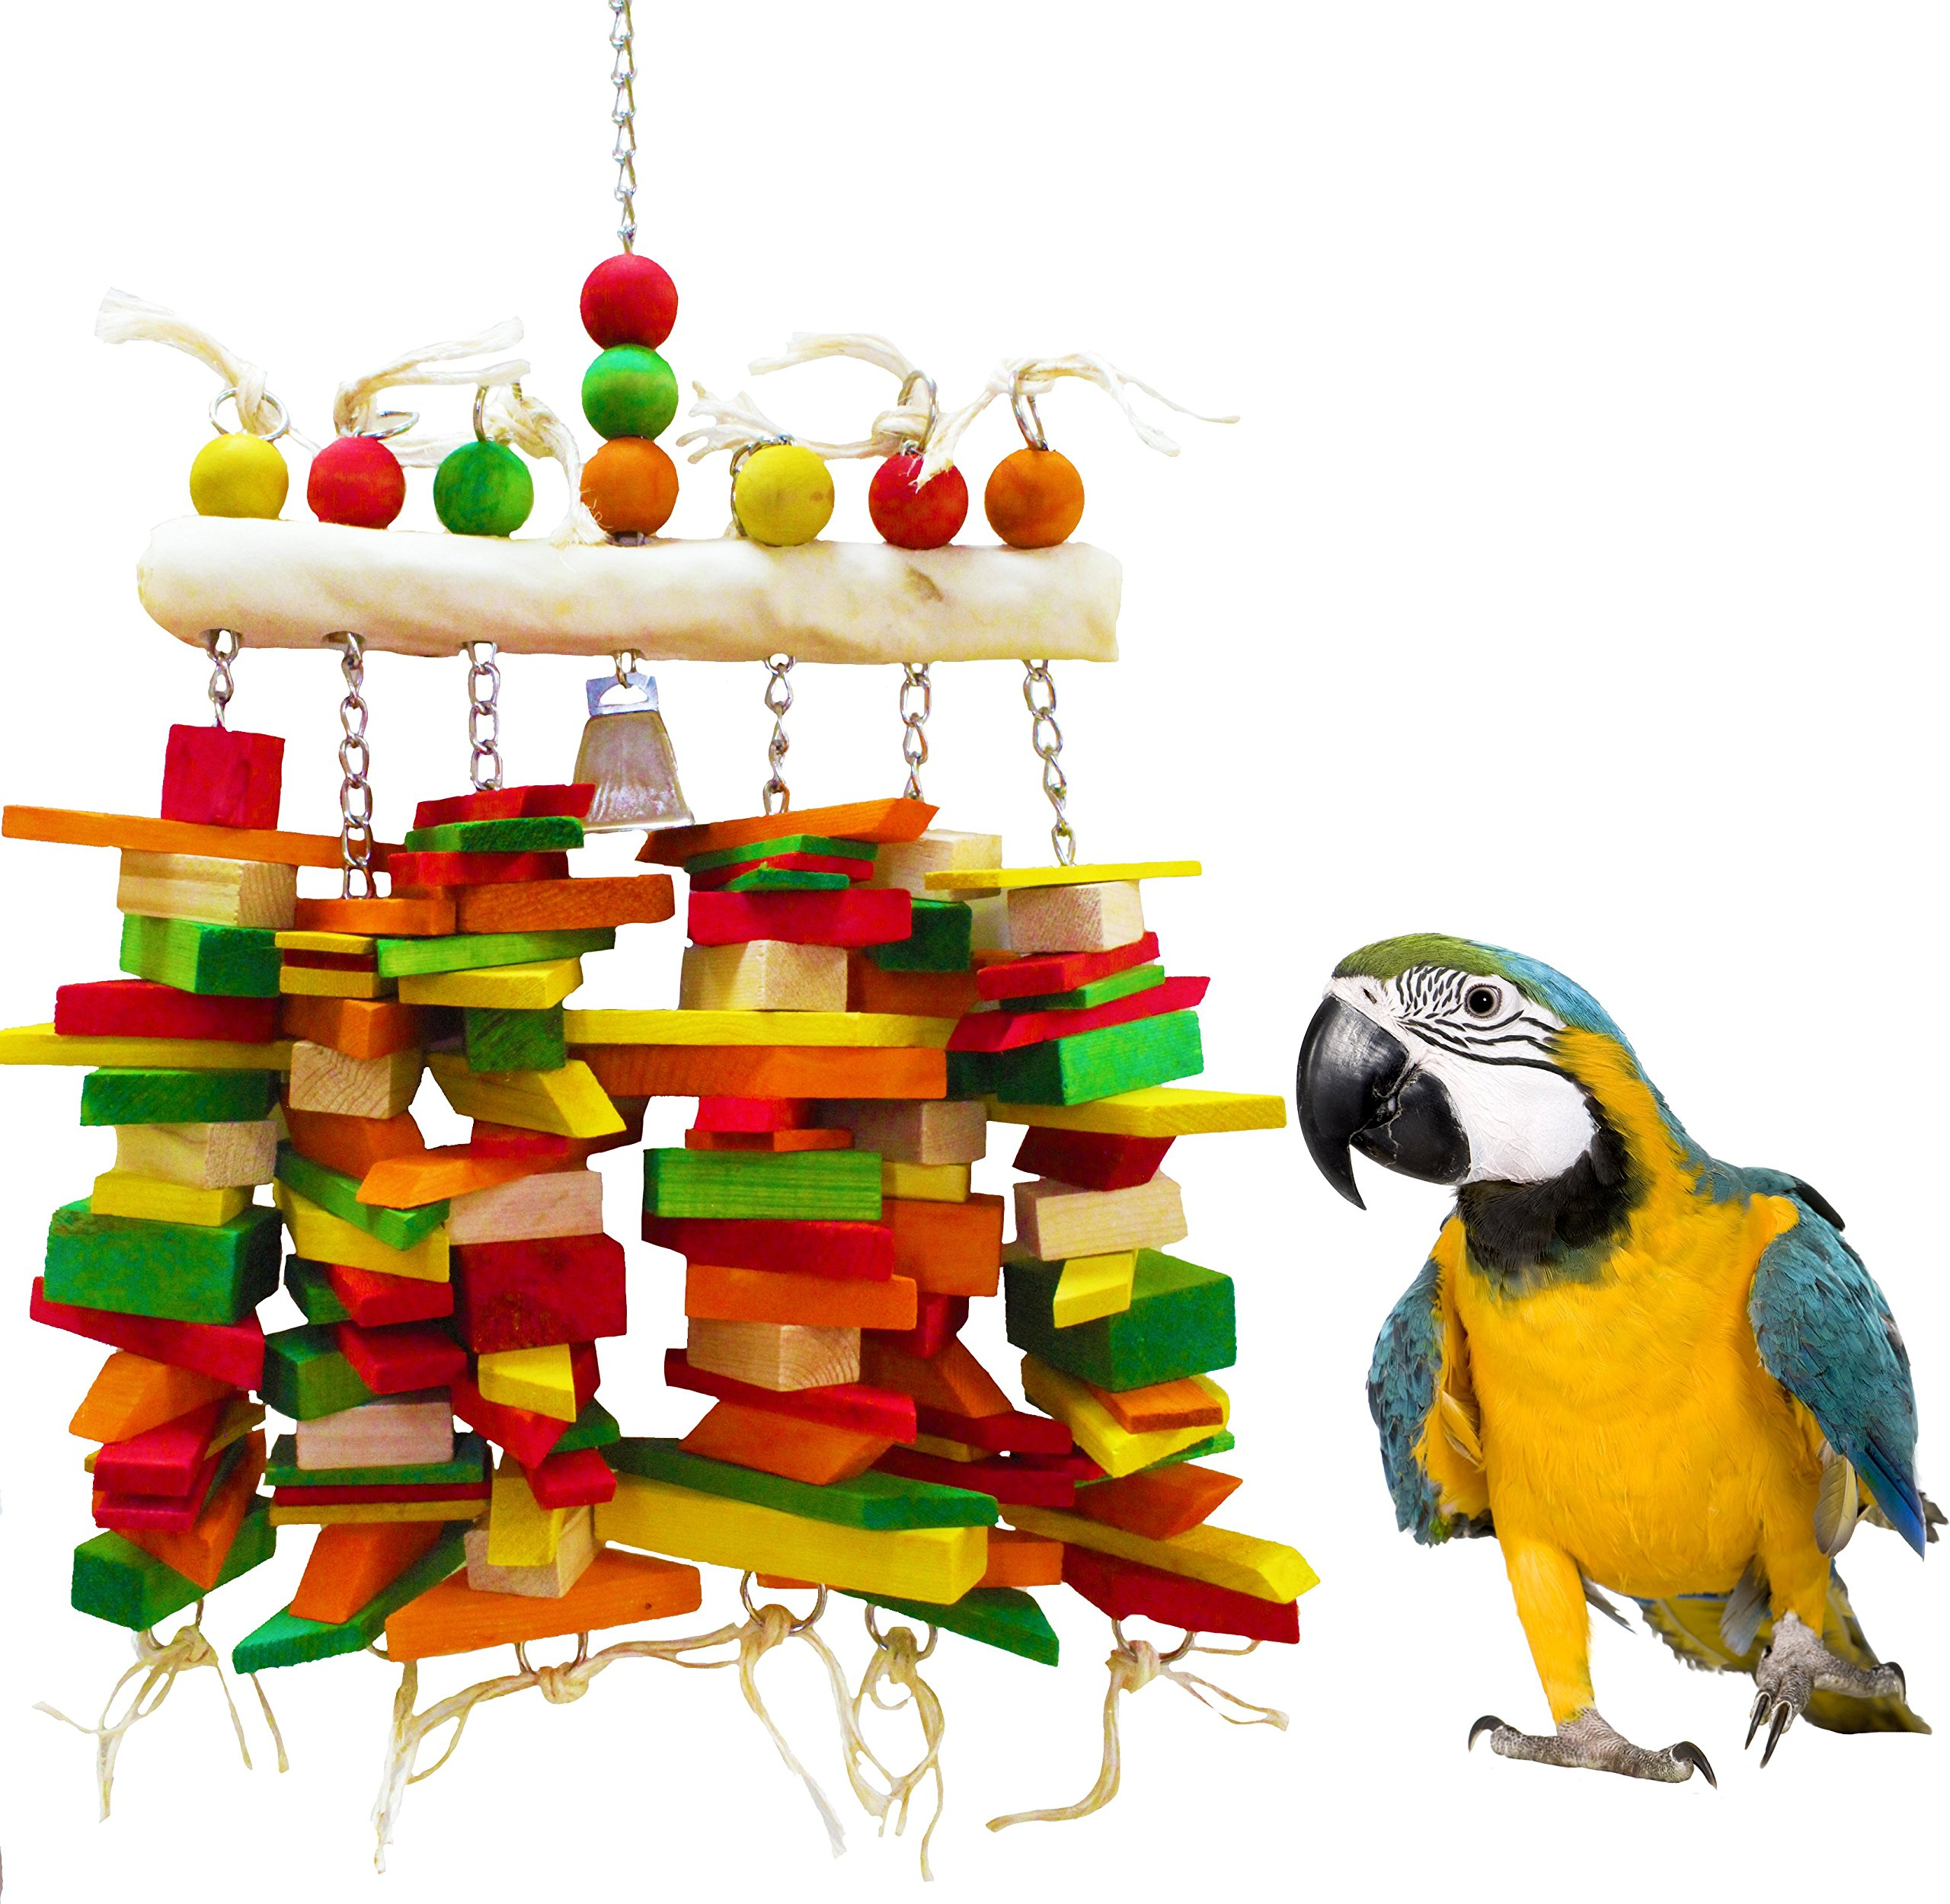 1381 Huge Bone Bridge Bird Toy parrot toys cages african grey macaw cockatoo by Bonka Bird Toys